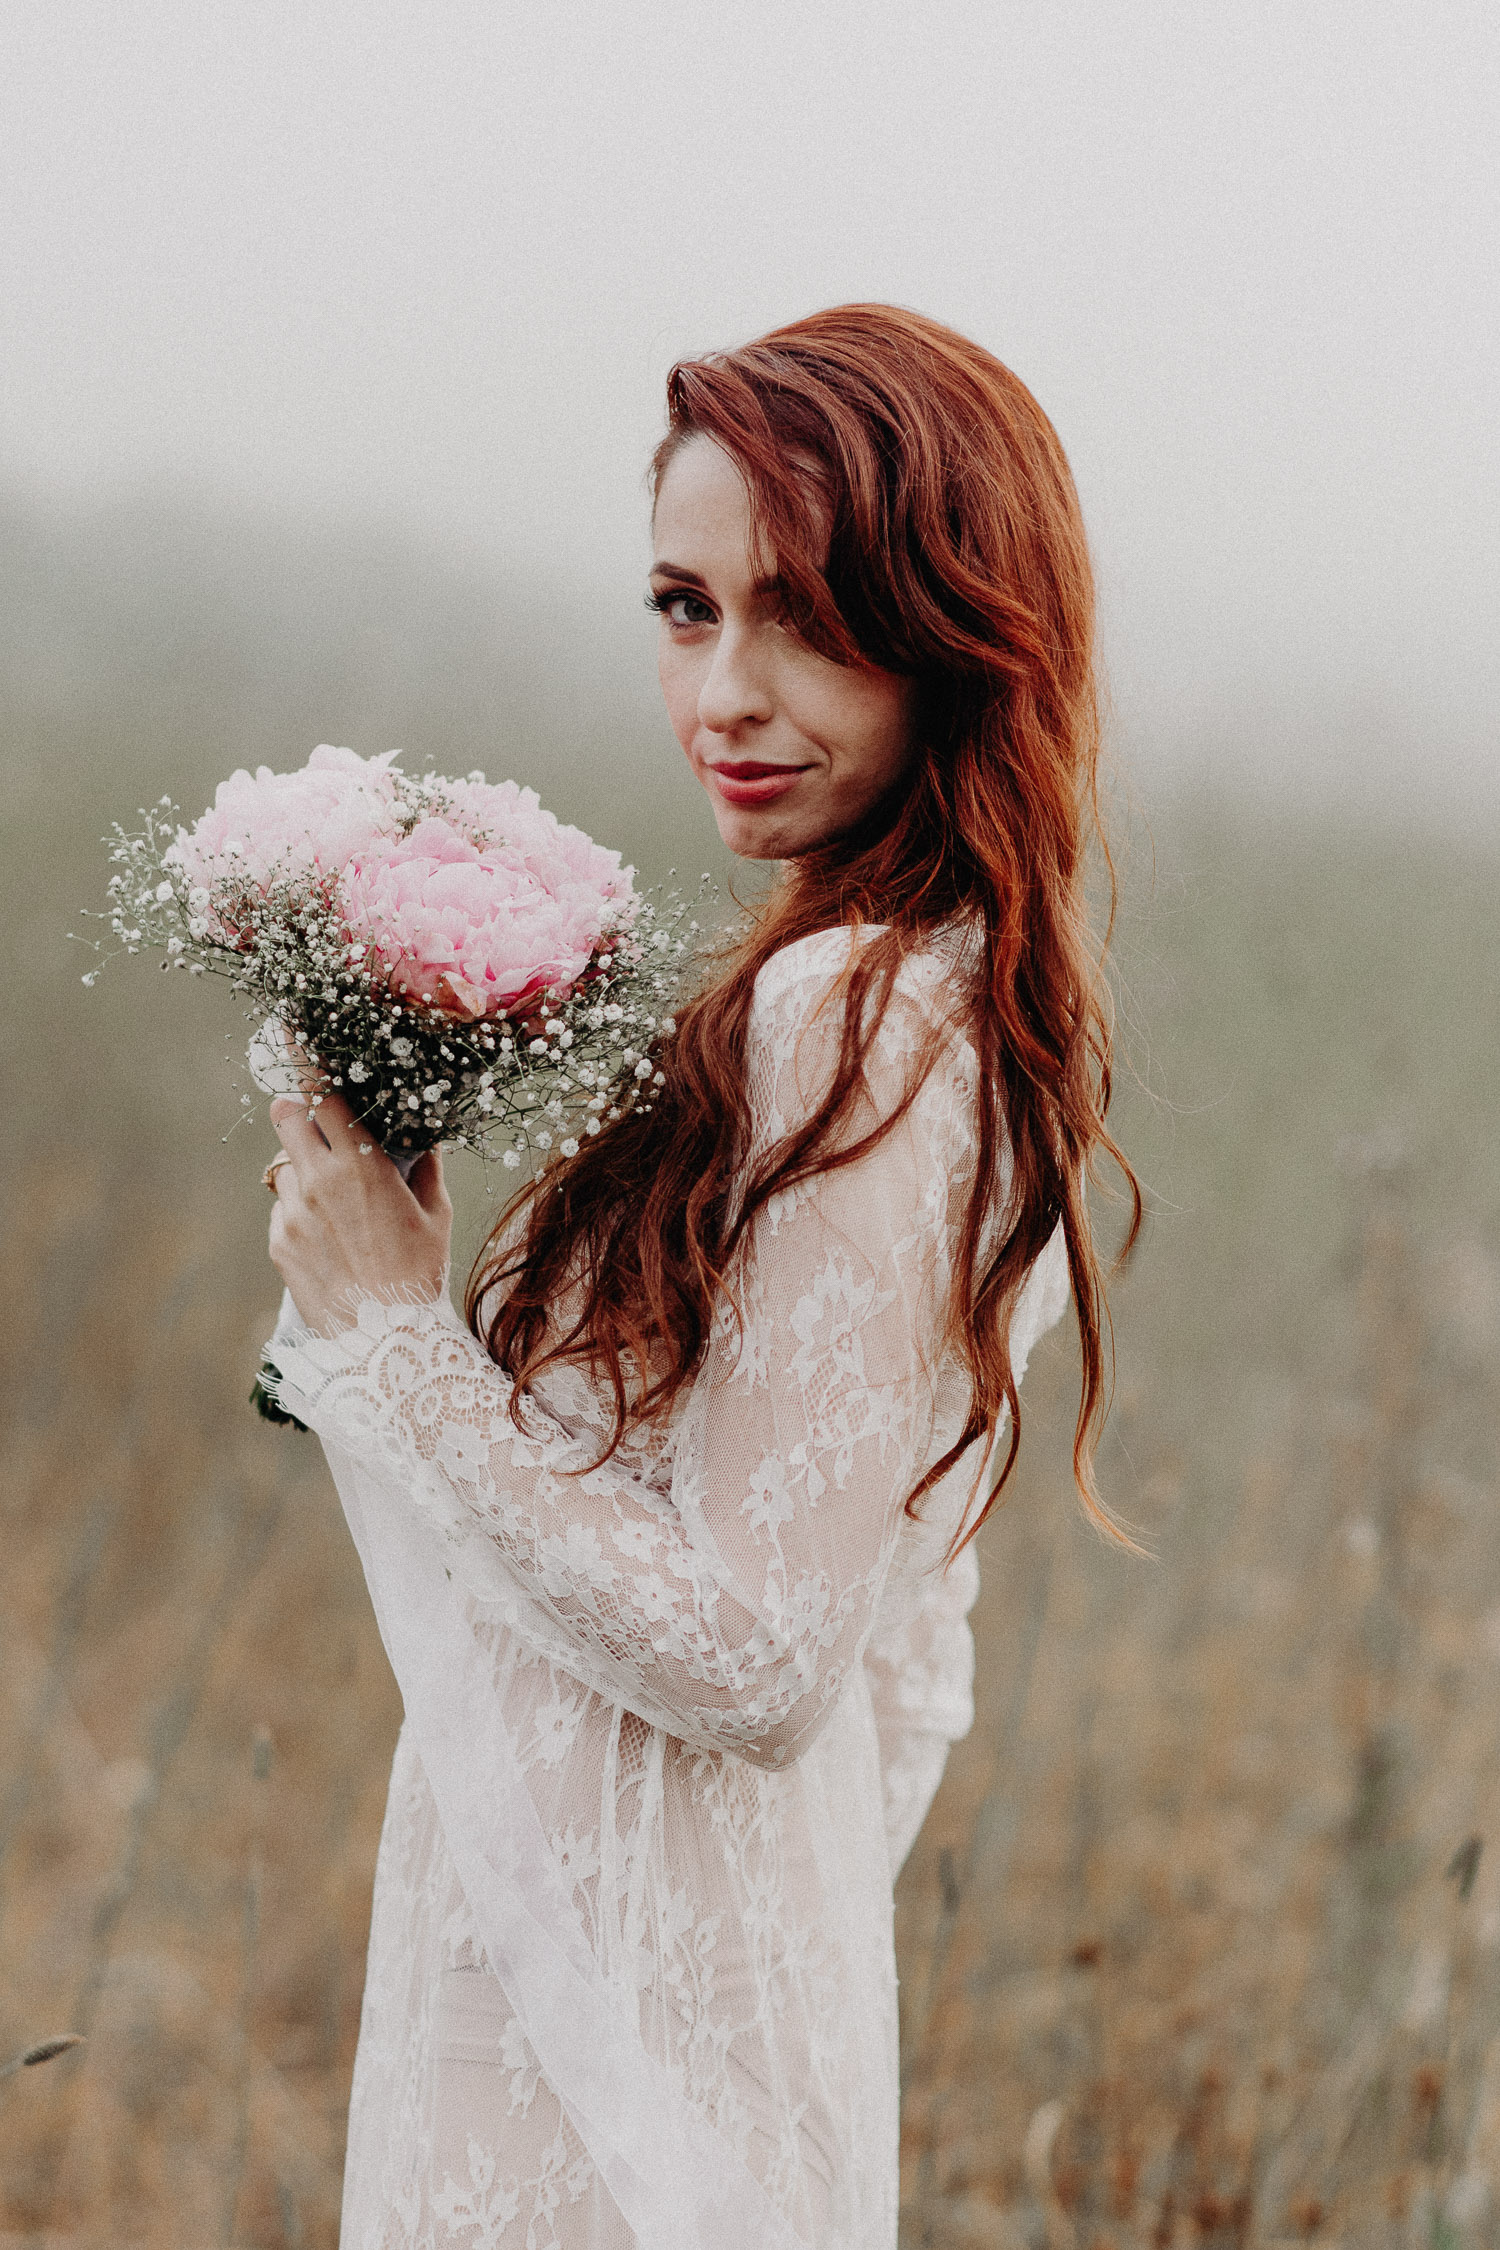 Image of red hair bride holds pink bouquet looks at the camera